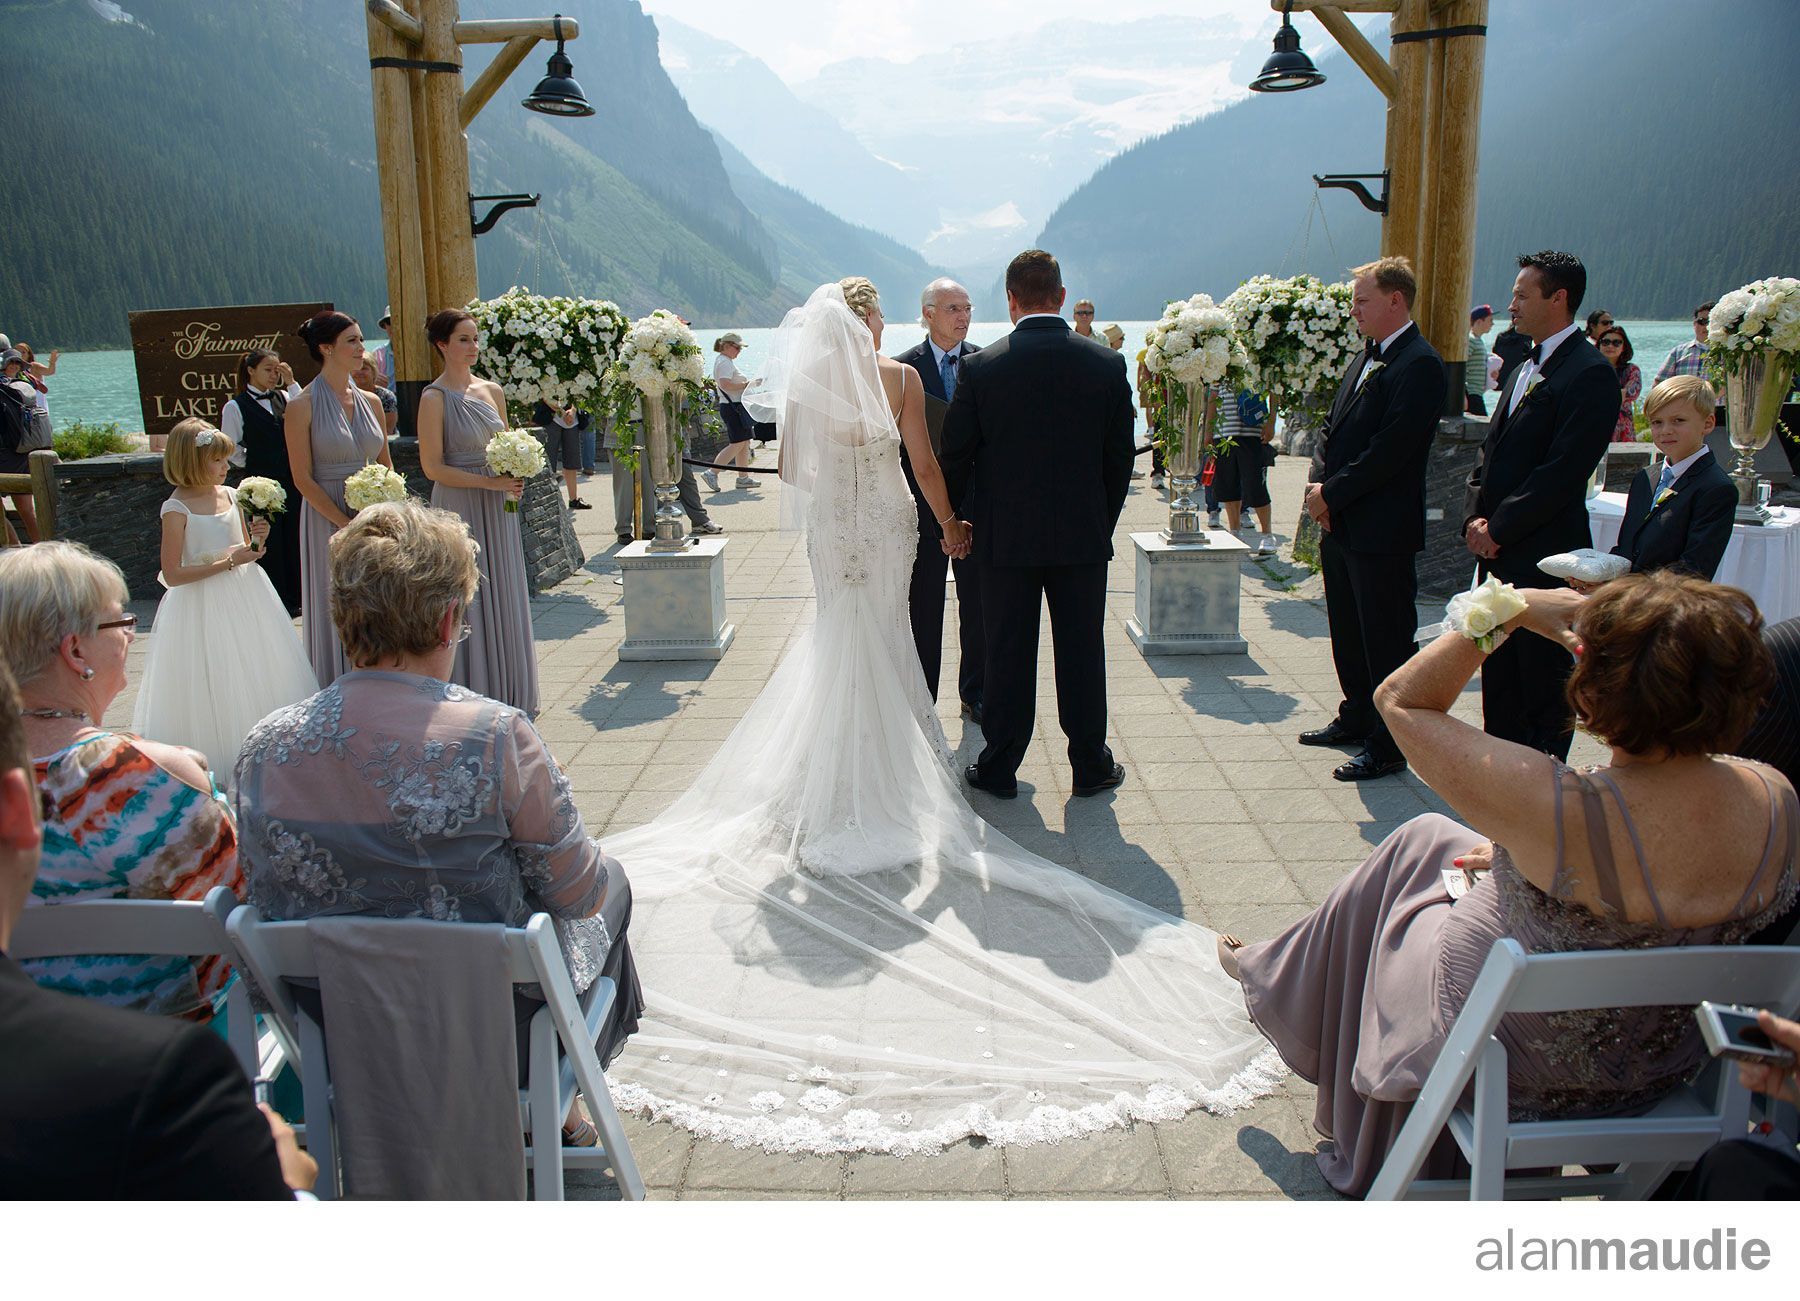 Cau Lake Louise Wedding Fairmont Victoria Terrace Rocky Mountain Weddings